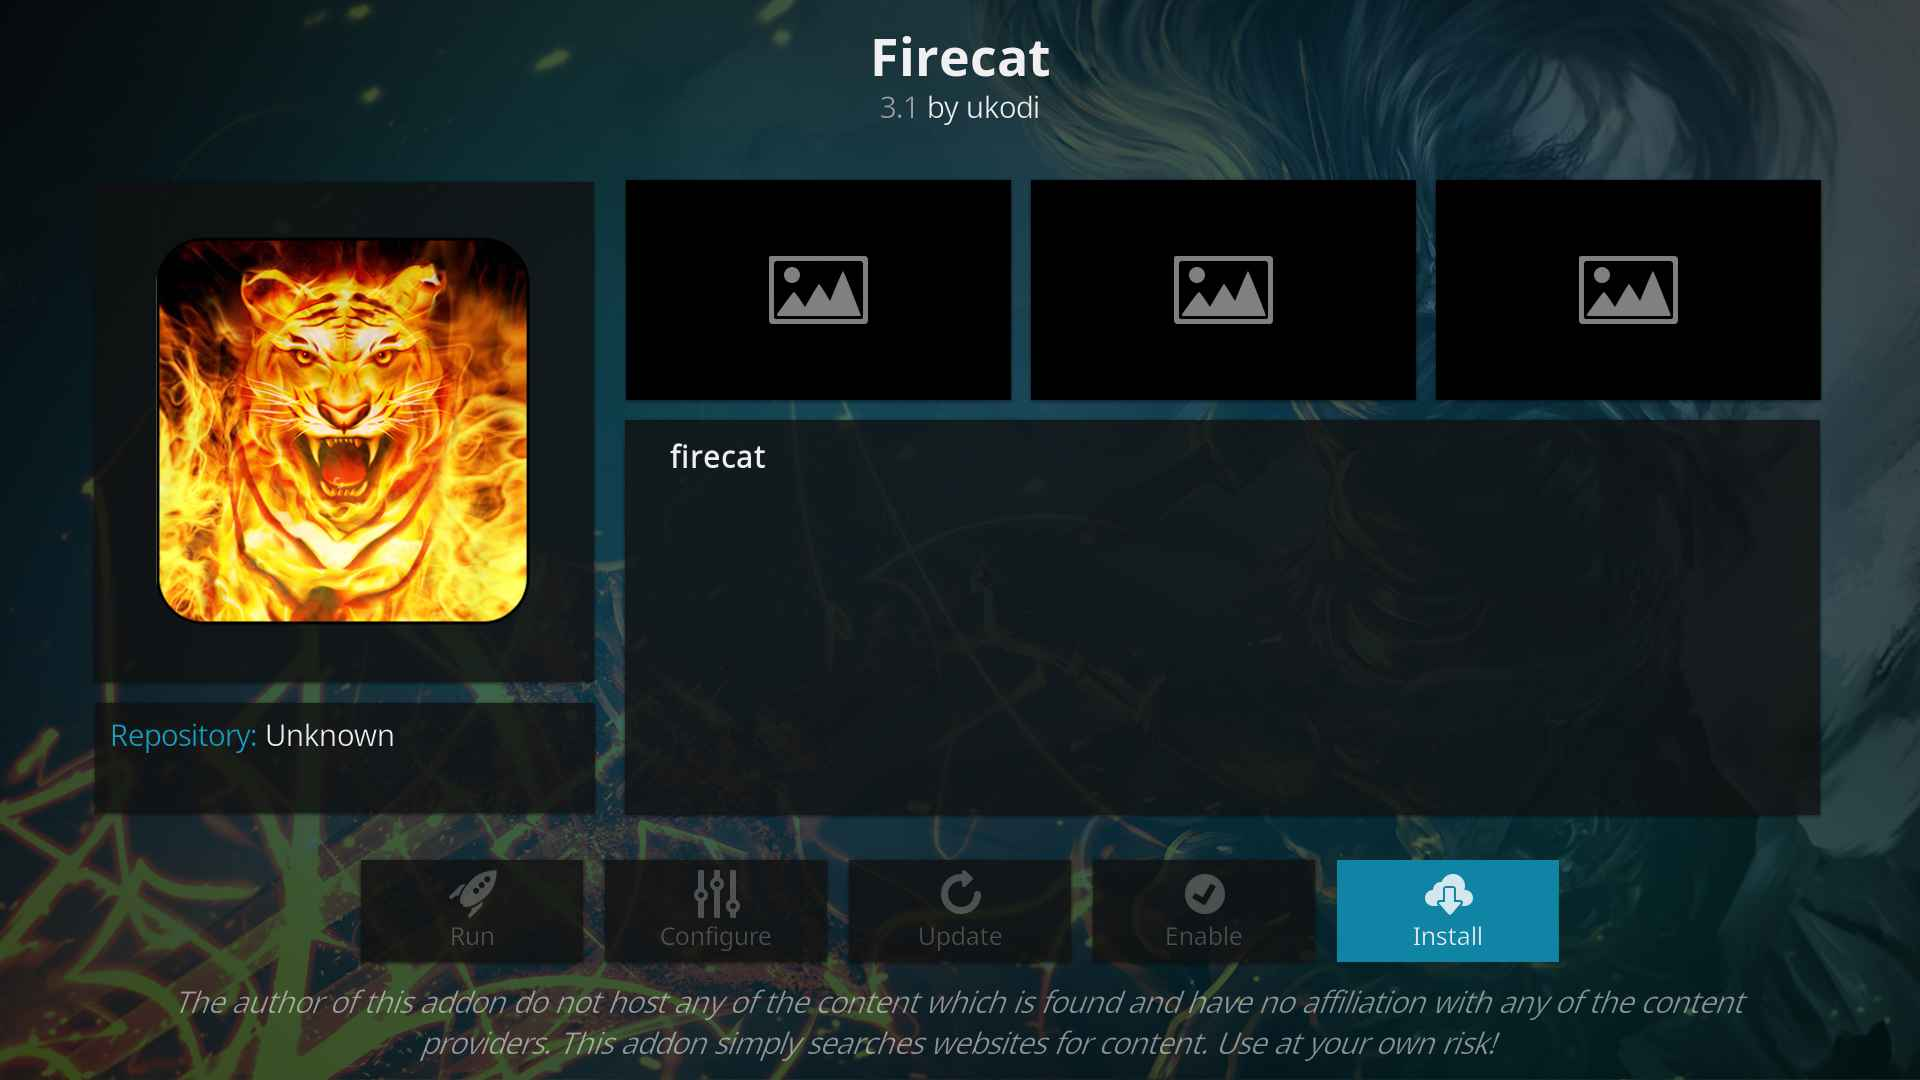 Firecat Kodi Addon Review and Installation guide with